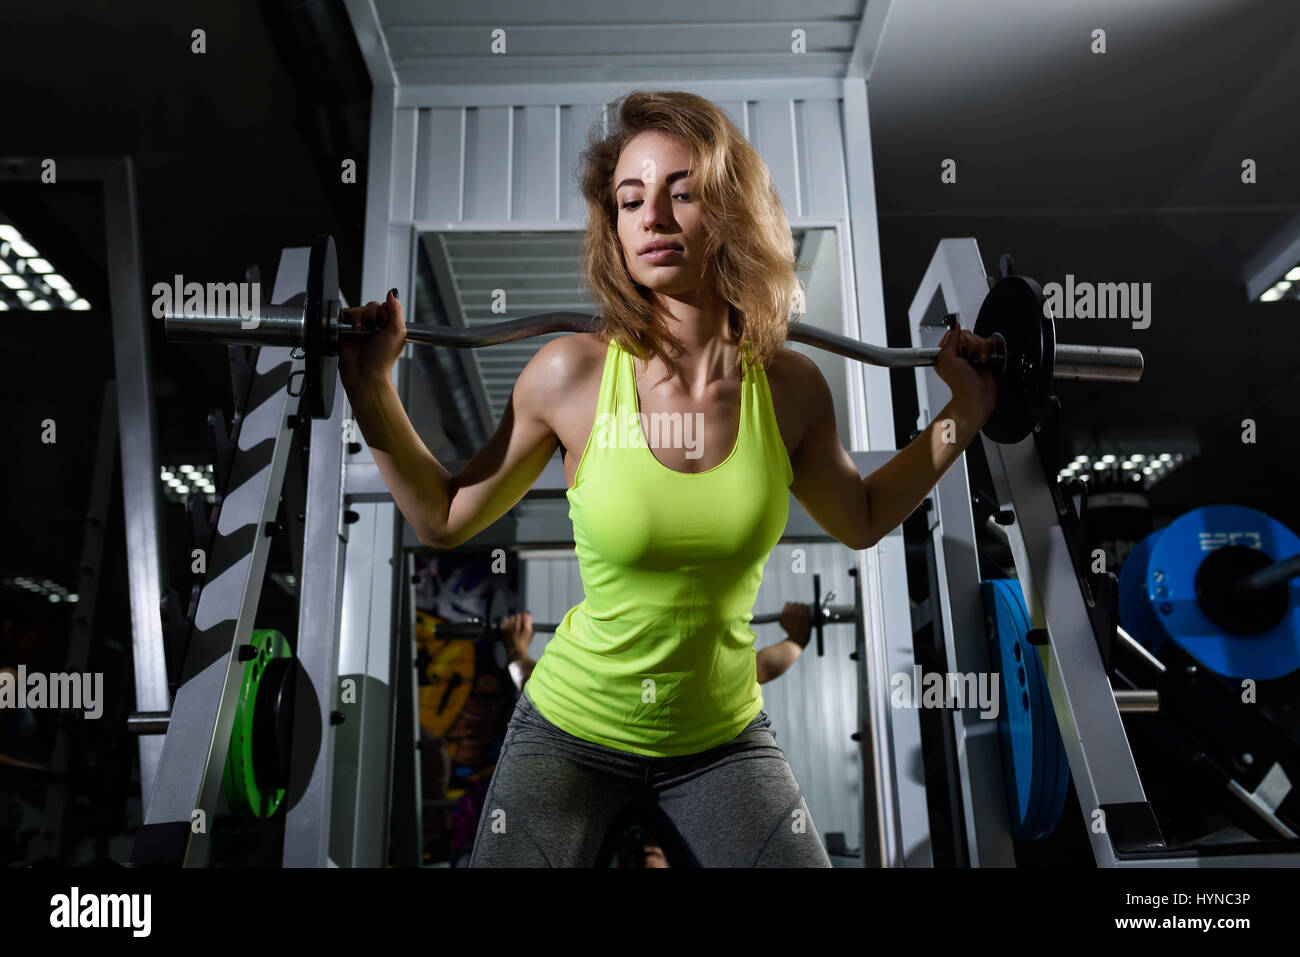 Girl in gym with barbell - Stock Image